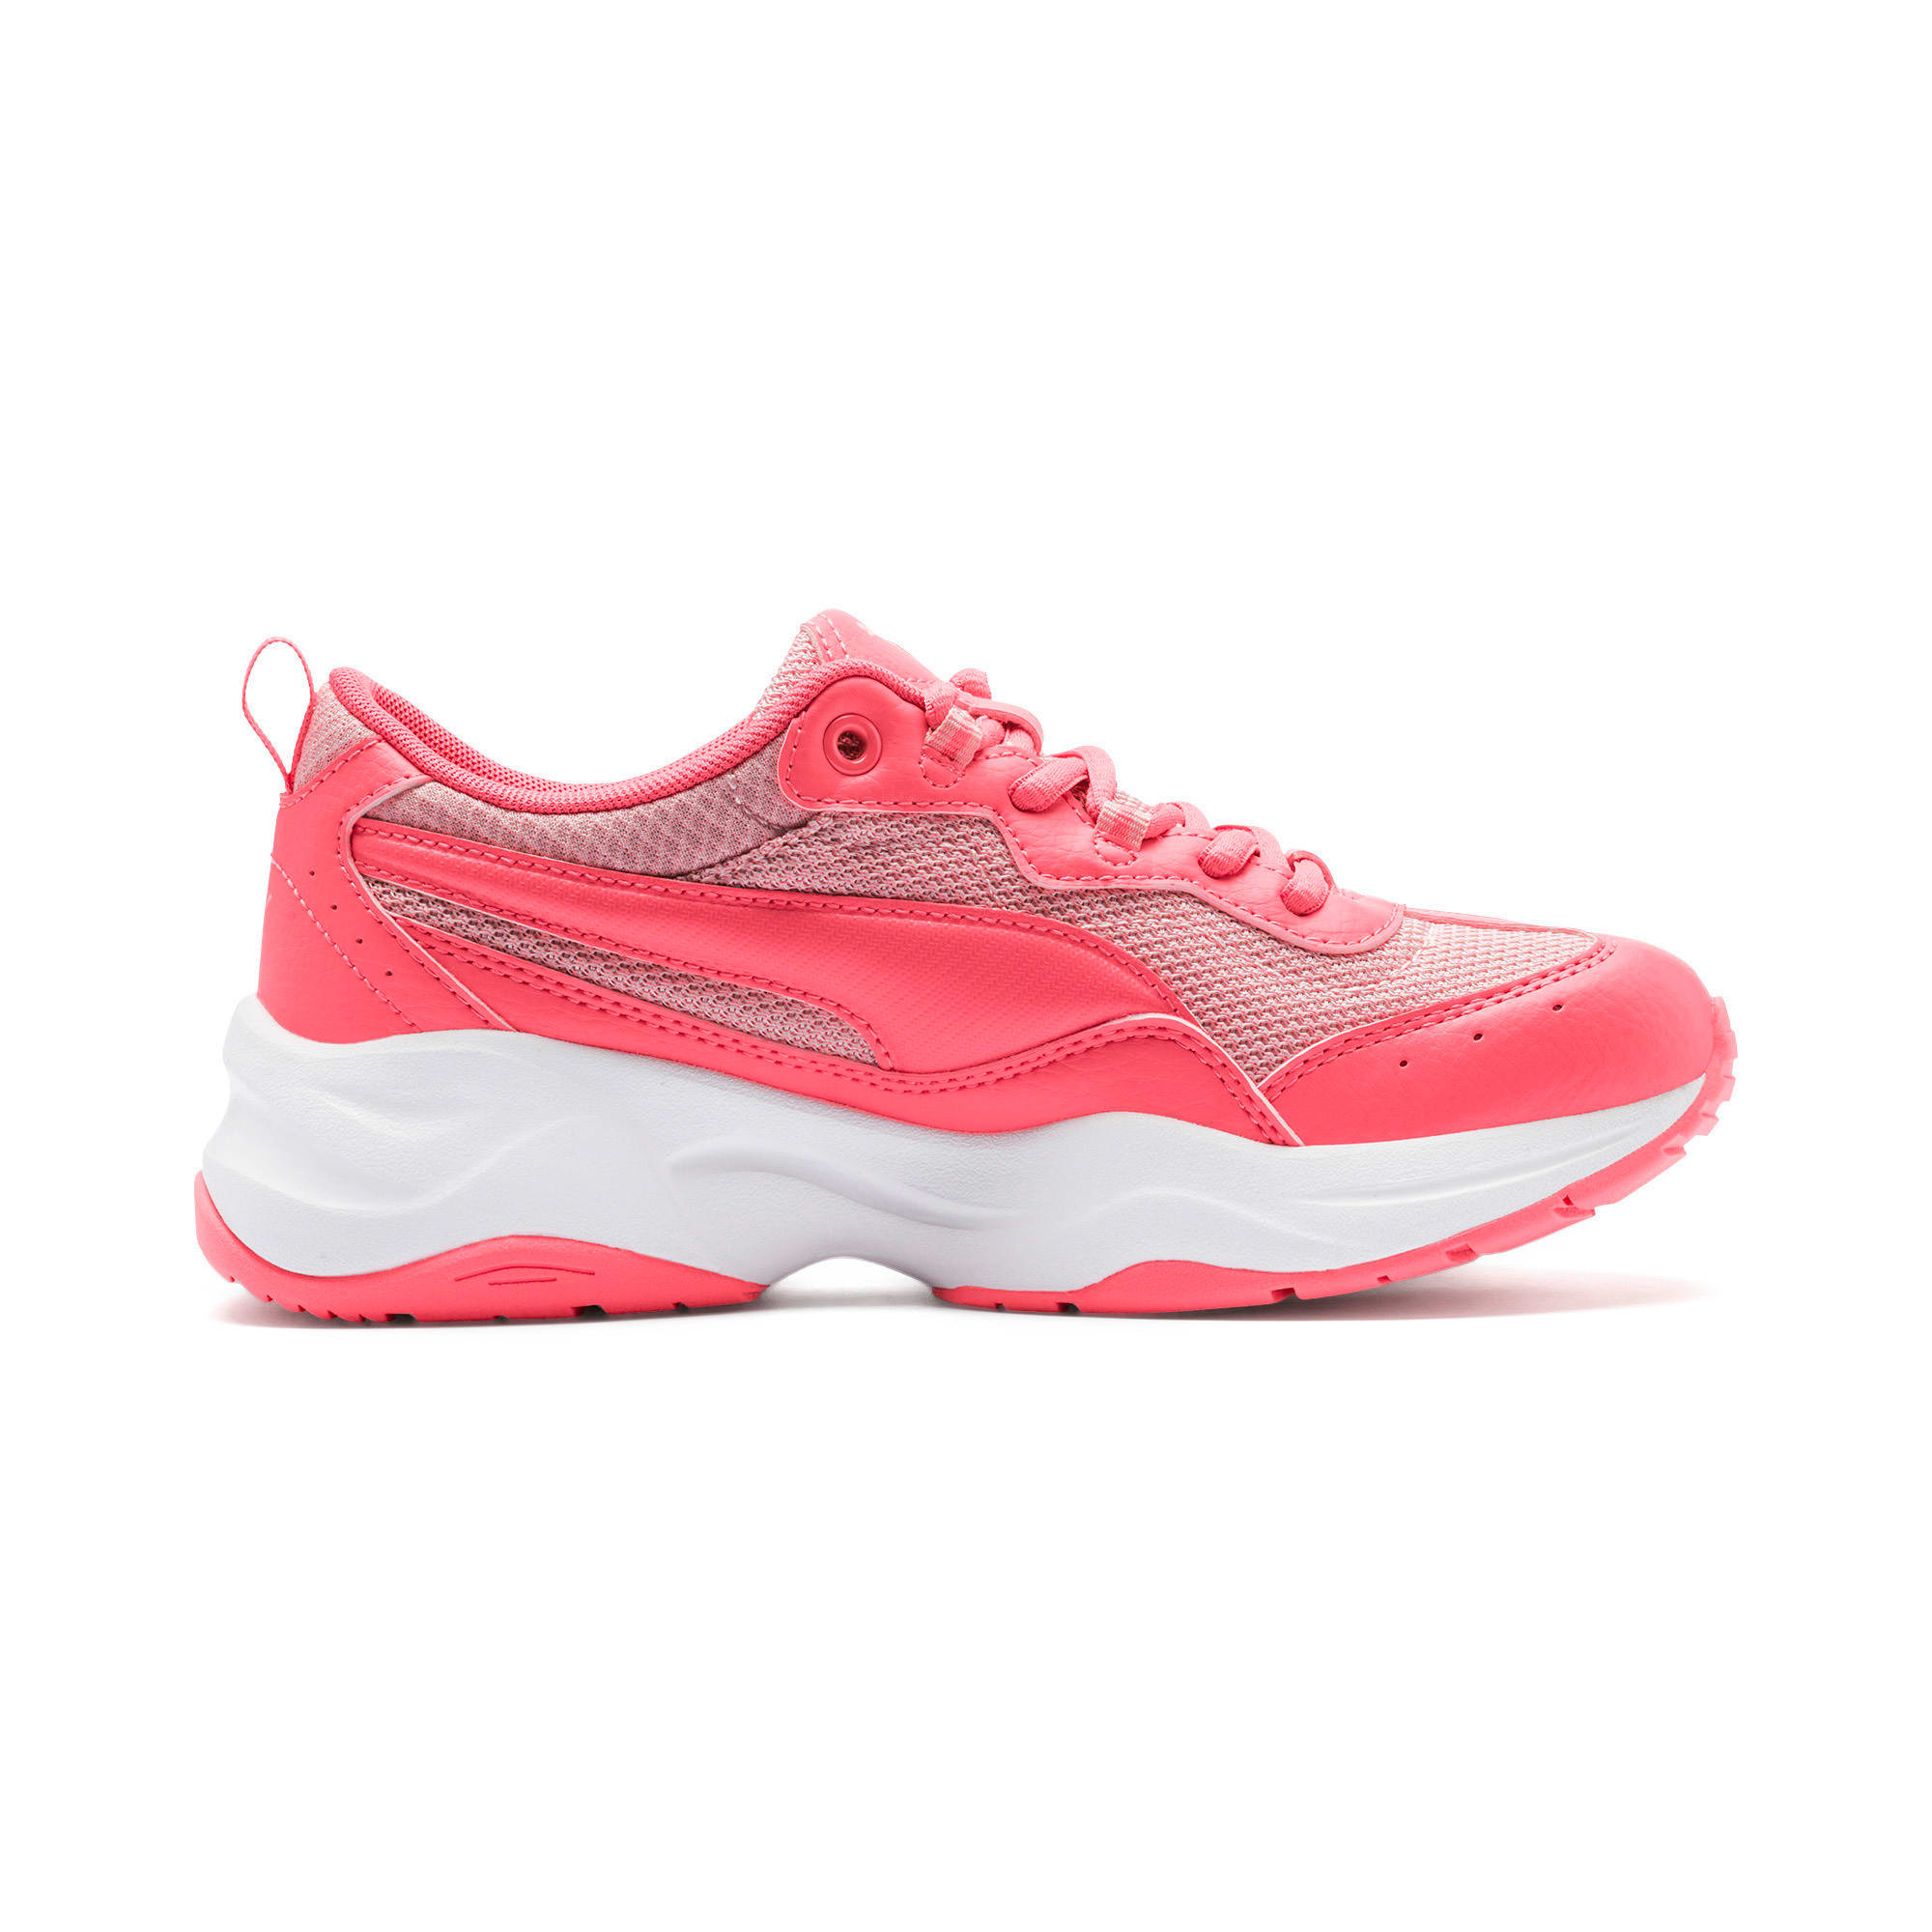 Thumbnail 5 of Cilia Youth Trainers, Calypso Coral-B Rose-White, medium-IND